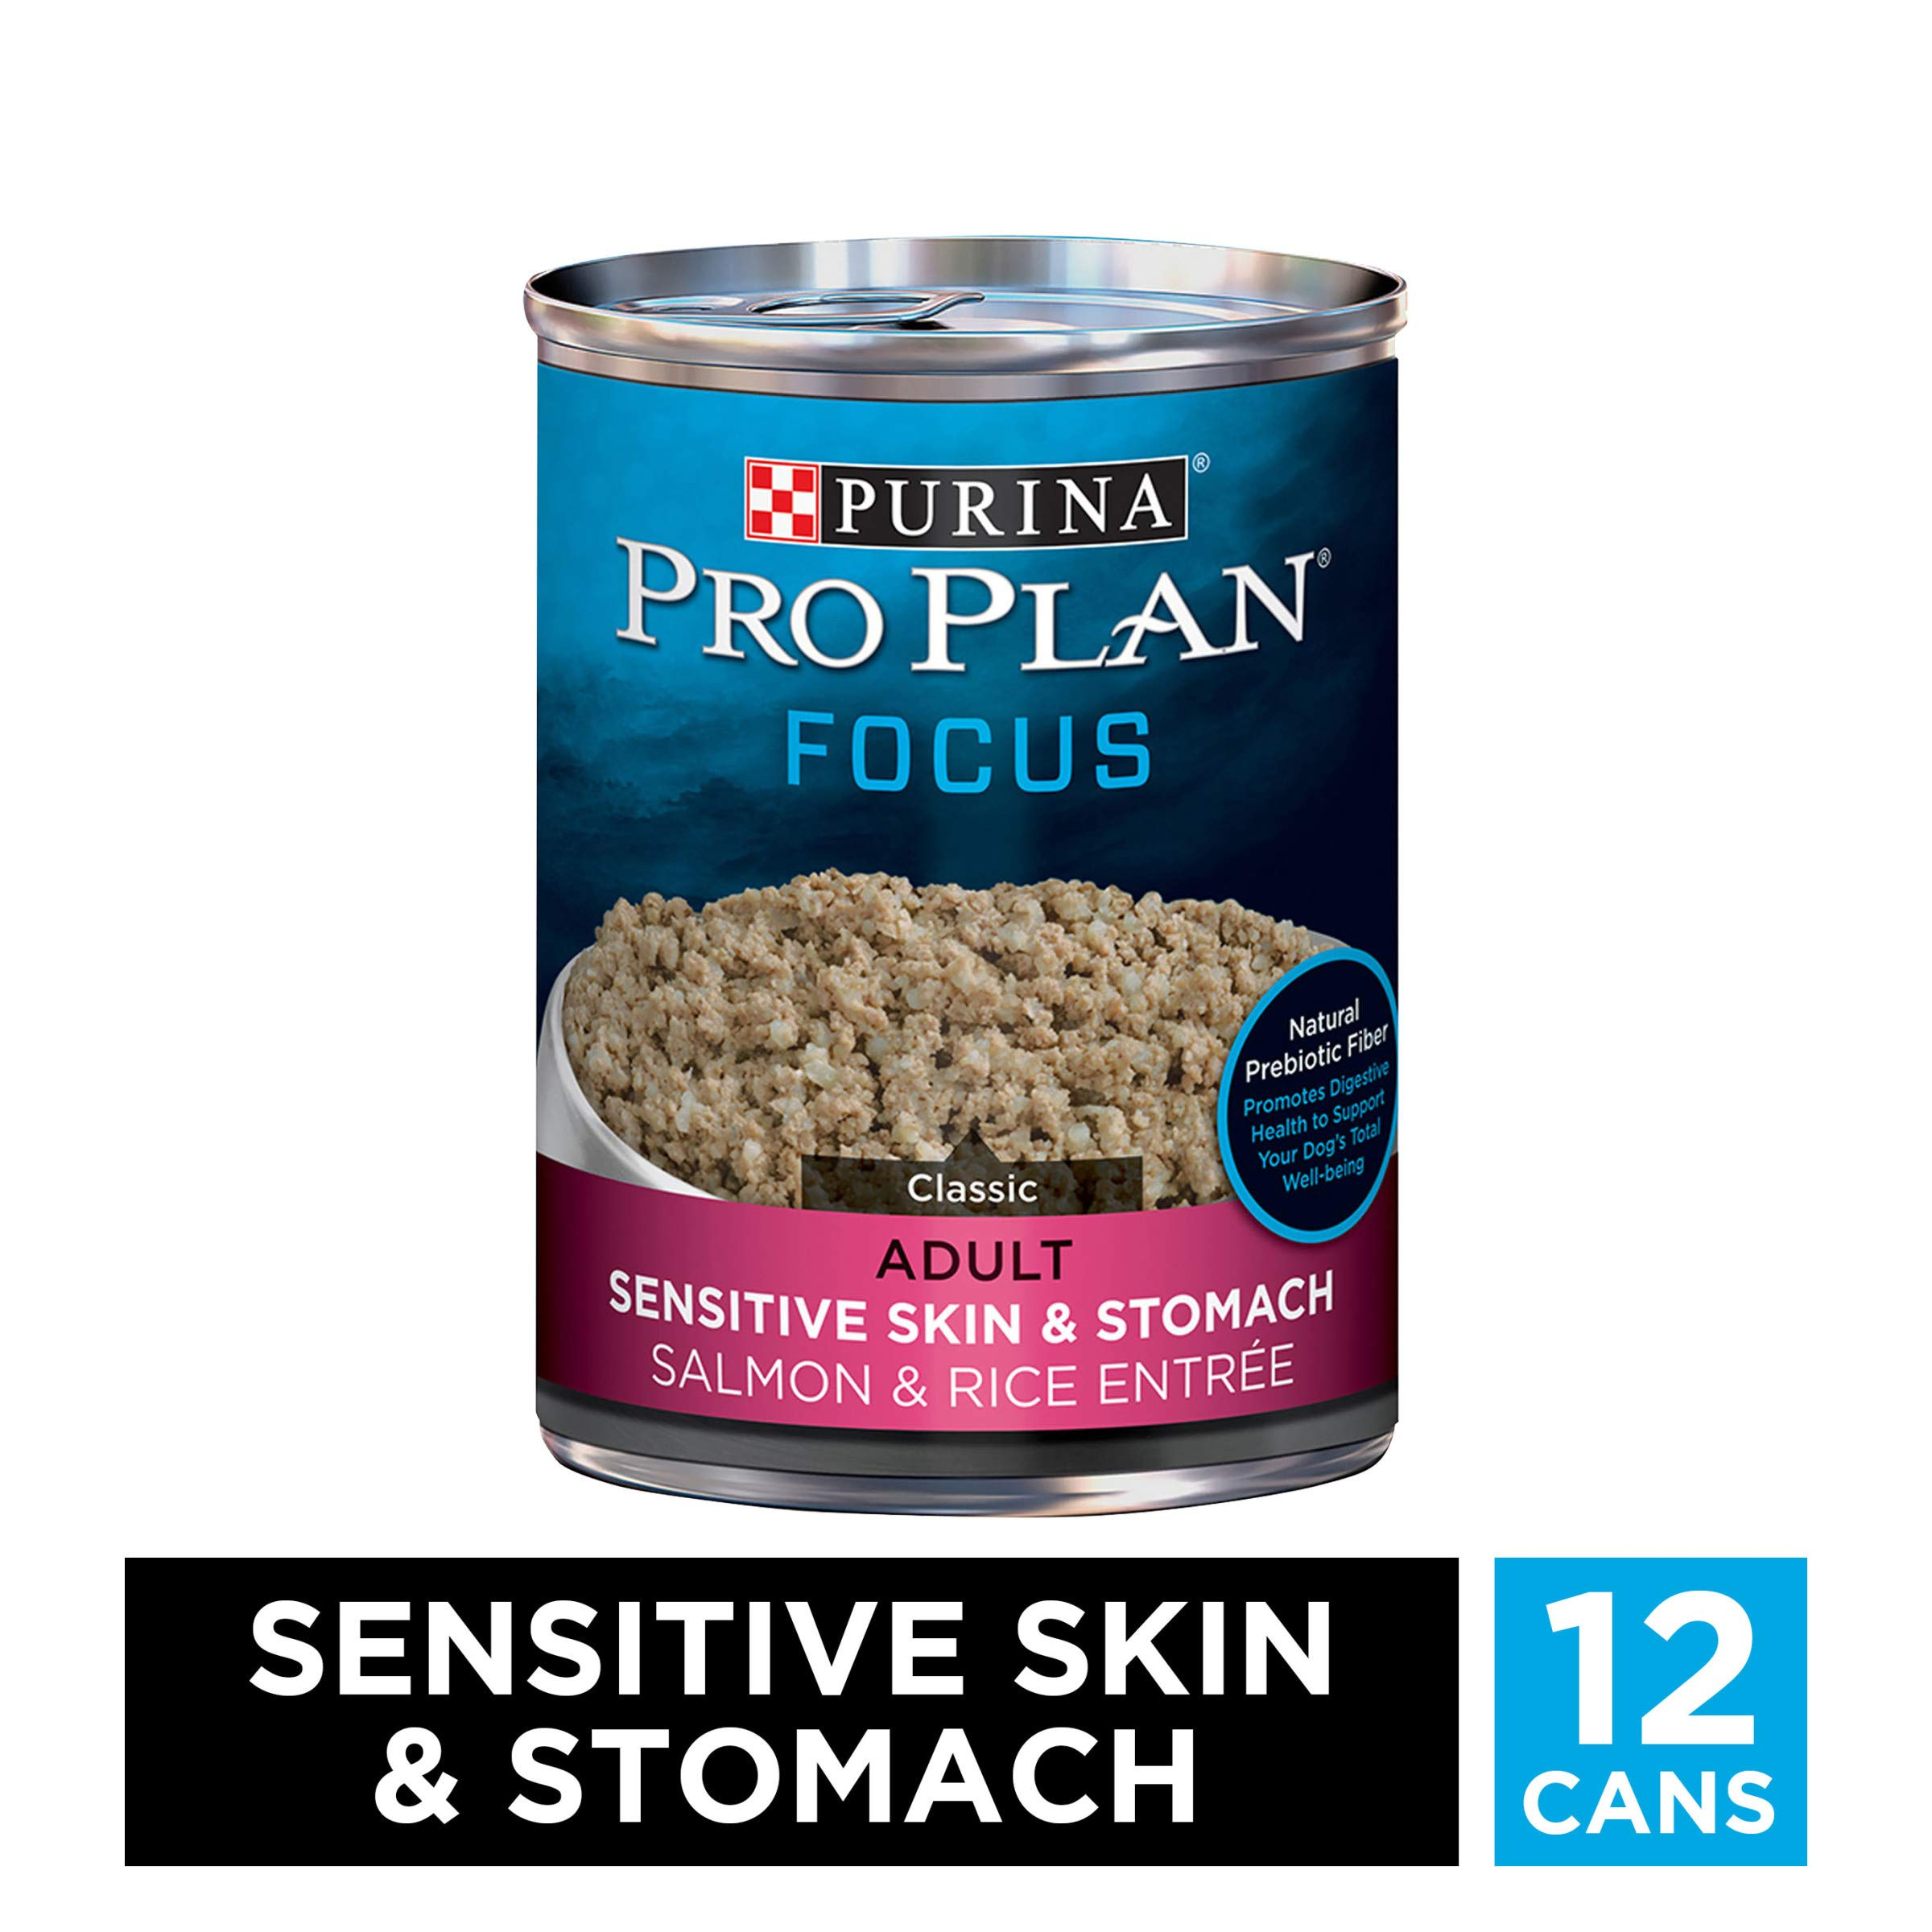 Purina Pro Plan Sensitive Stomach Pate Wet Dog Food, FOCUS Sensitive Skin & Stomach Salmon & Rice Entree - (12) 13 oz. Cans by PURINA Pro Plan